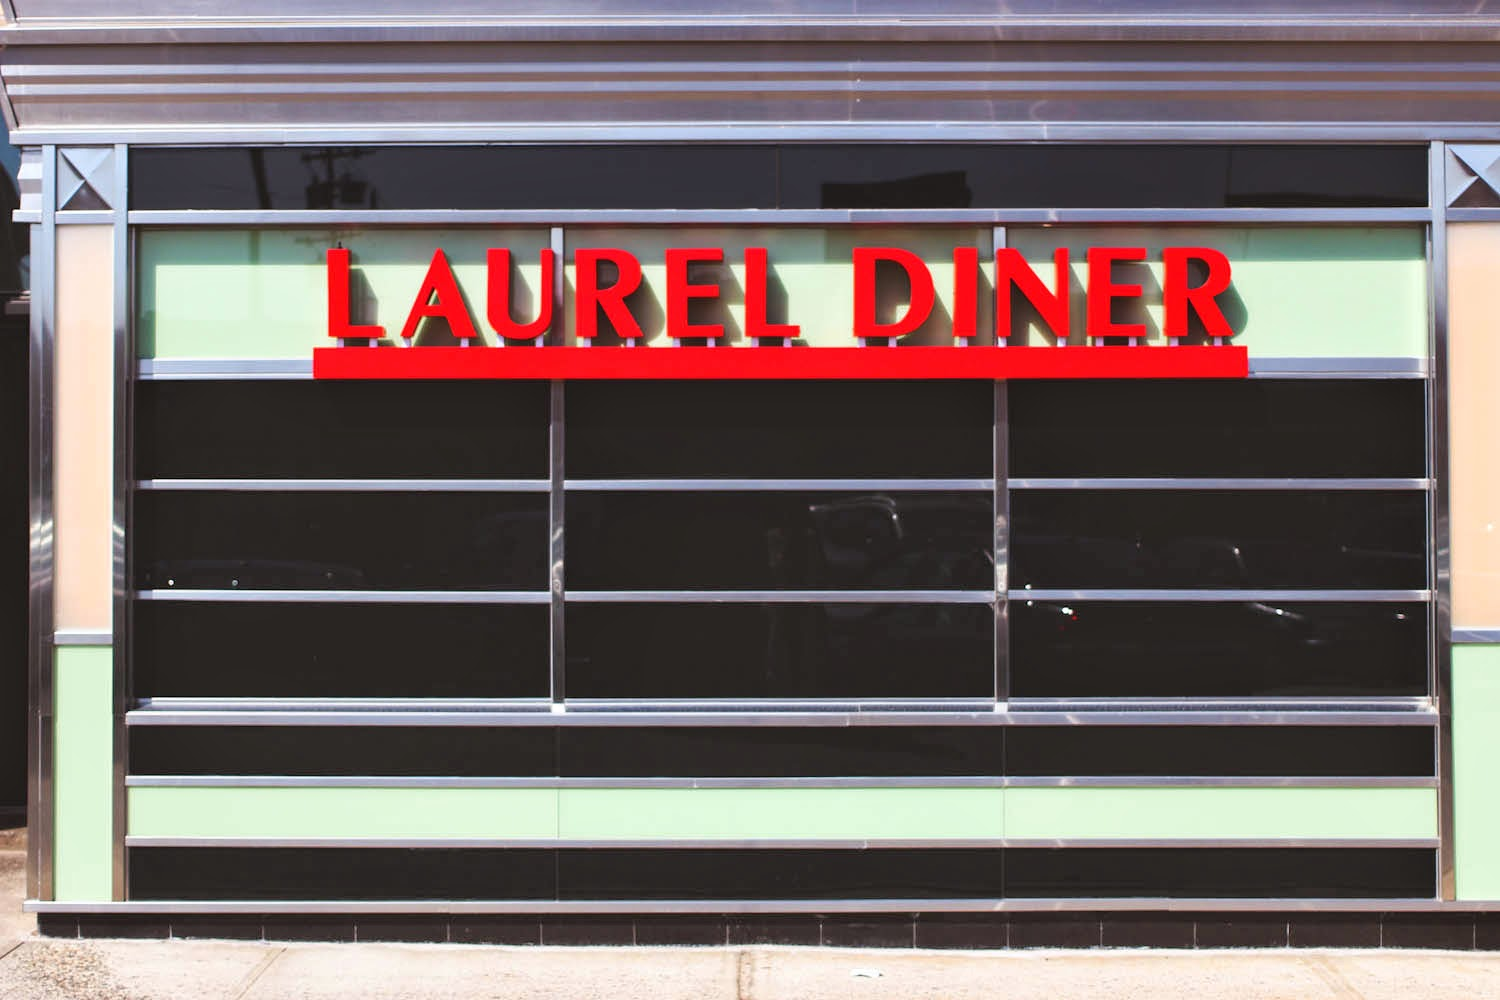 ny fashion blog, laurel diner, nyc fashion blog